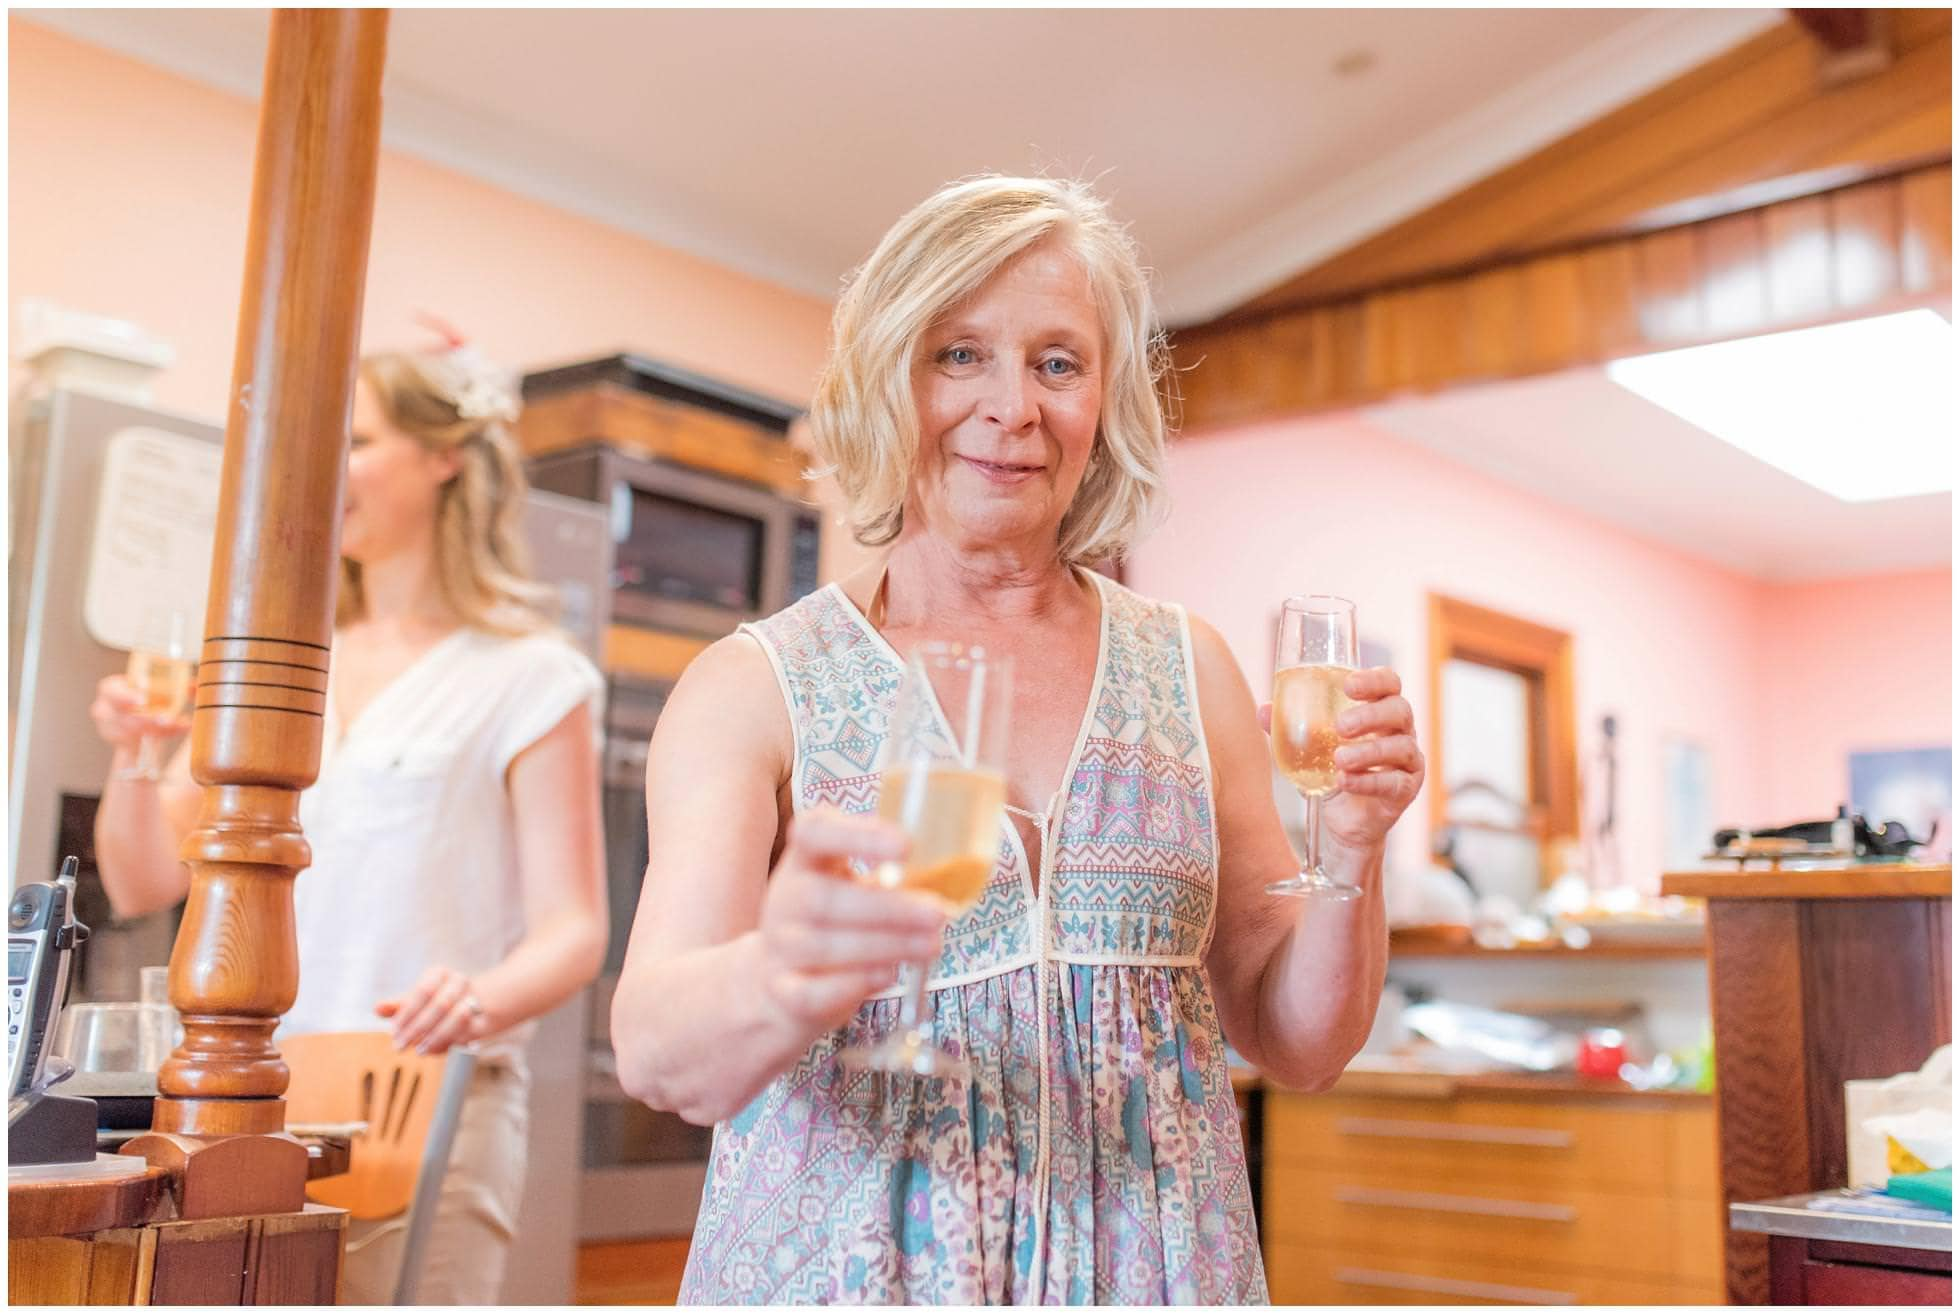 Champagne is served by the lovely mother of the bride in Frenchs Forest, Sydney